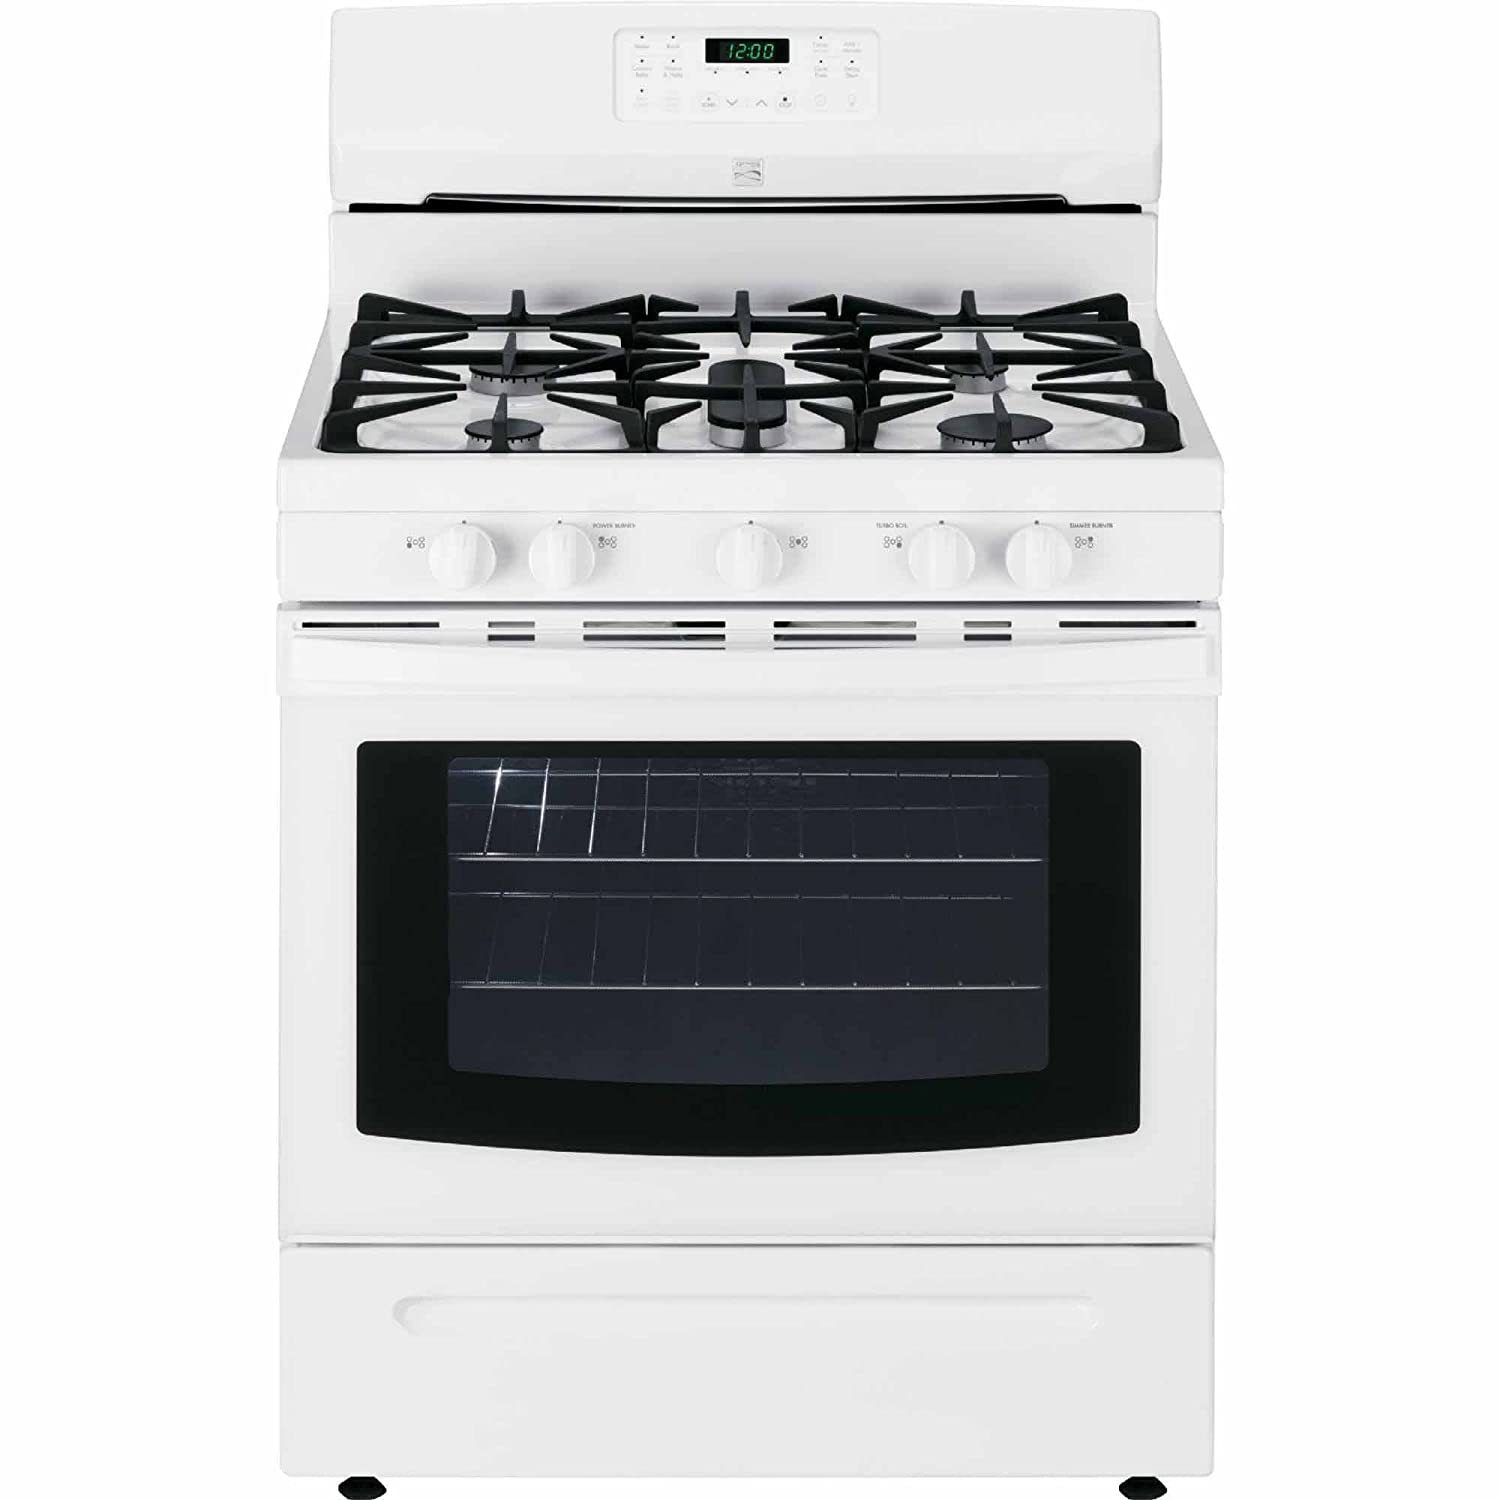 Amazon.com: Kenmore 74232 5.0 cu. ft. Self Clean Gas Range in White,  includes delivery and hookup: Appliances